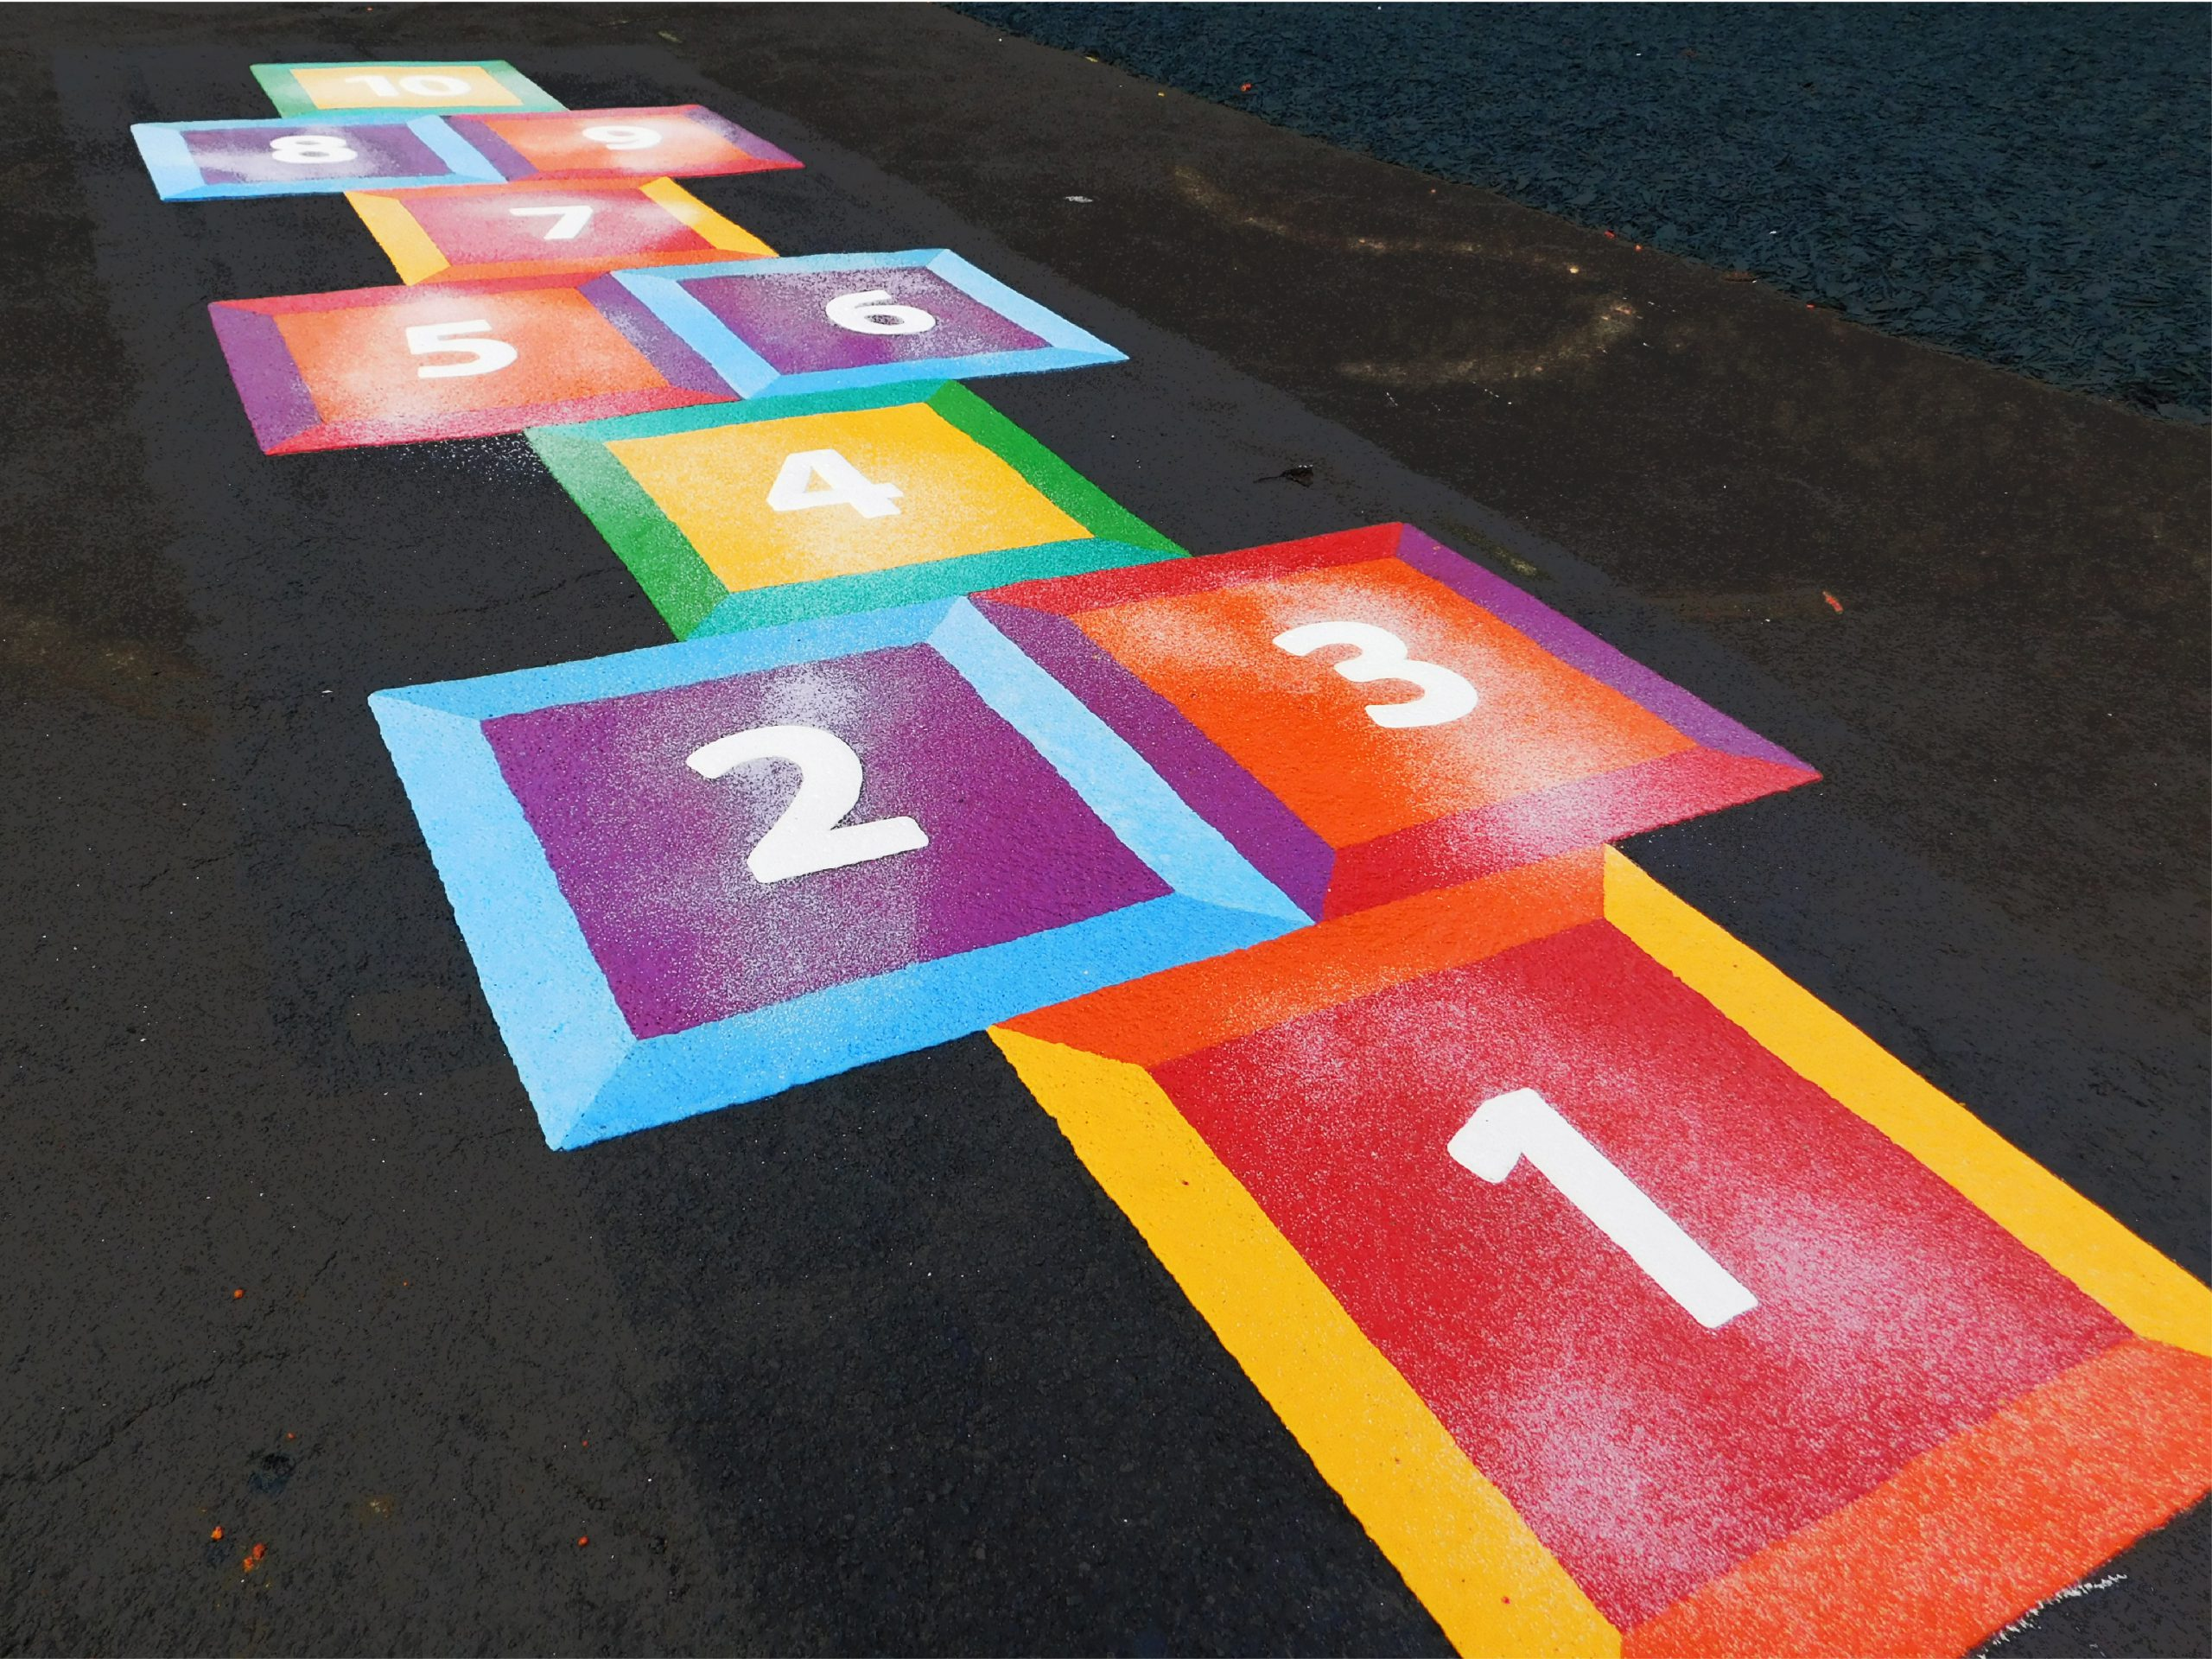 What makes these traditional playground games so popular?